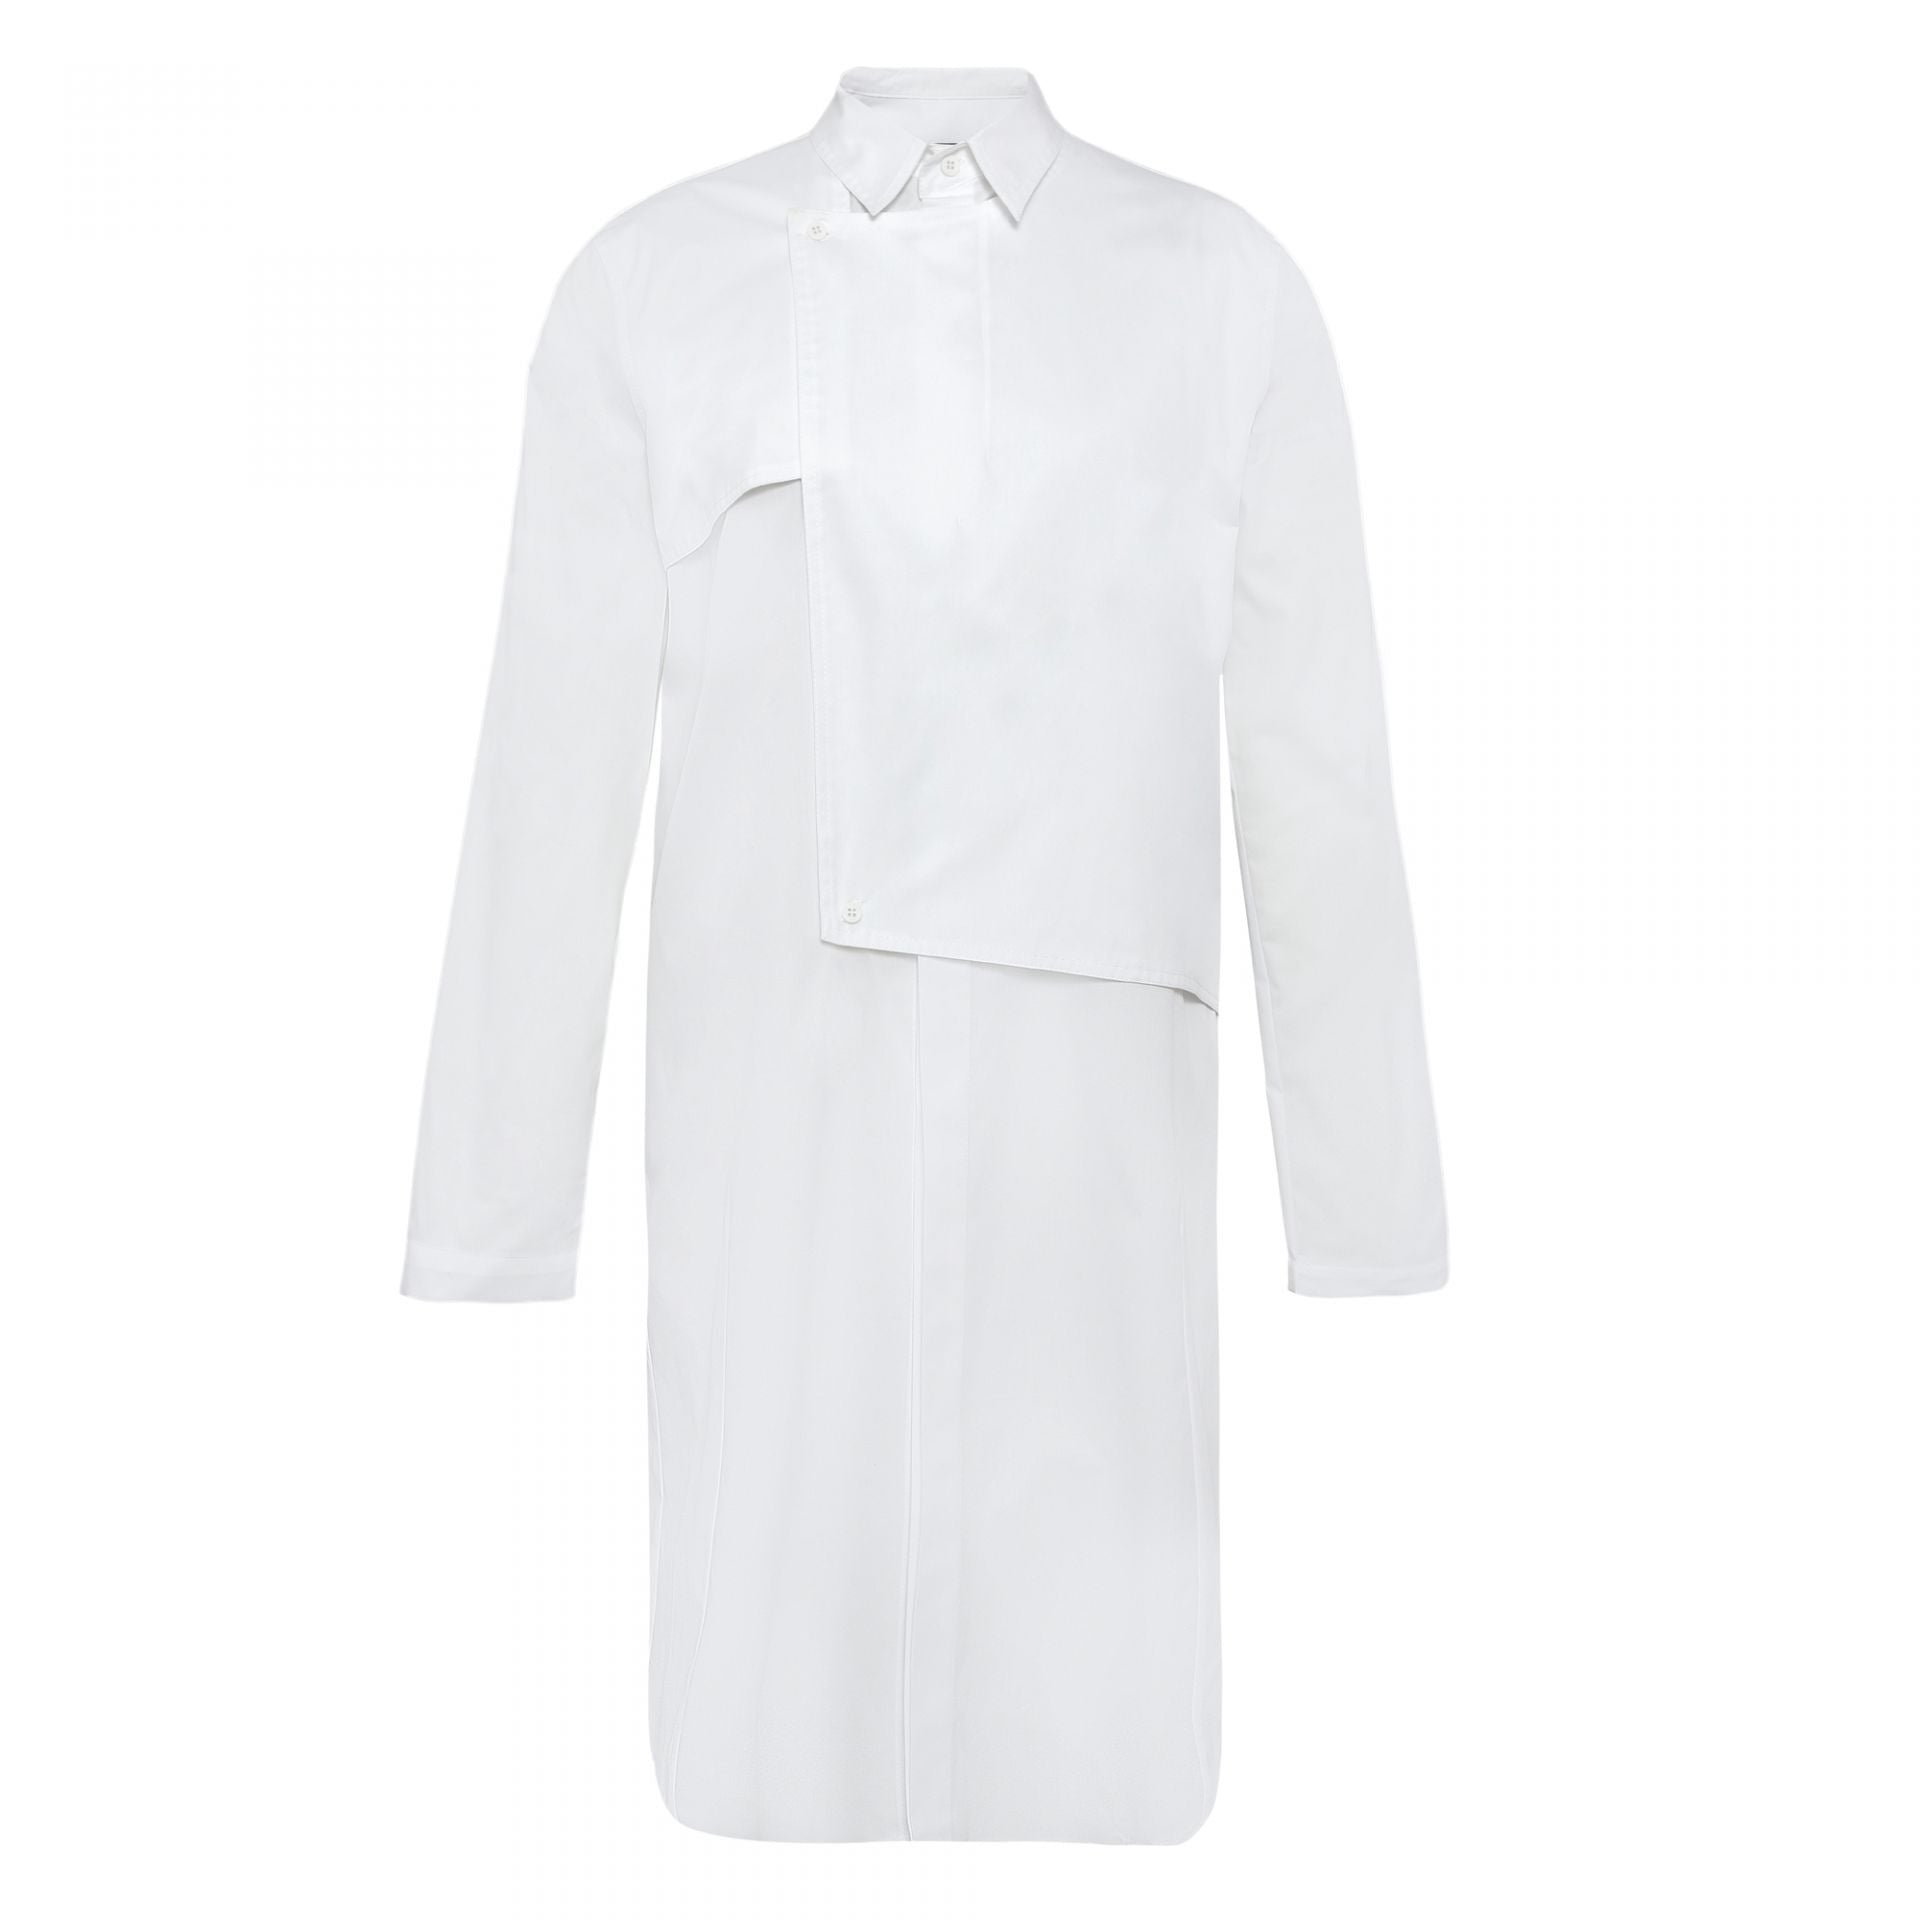 TRENCH SHIRT WHITE